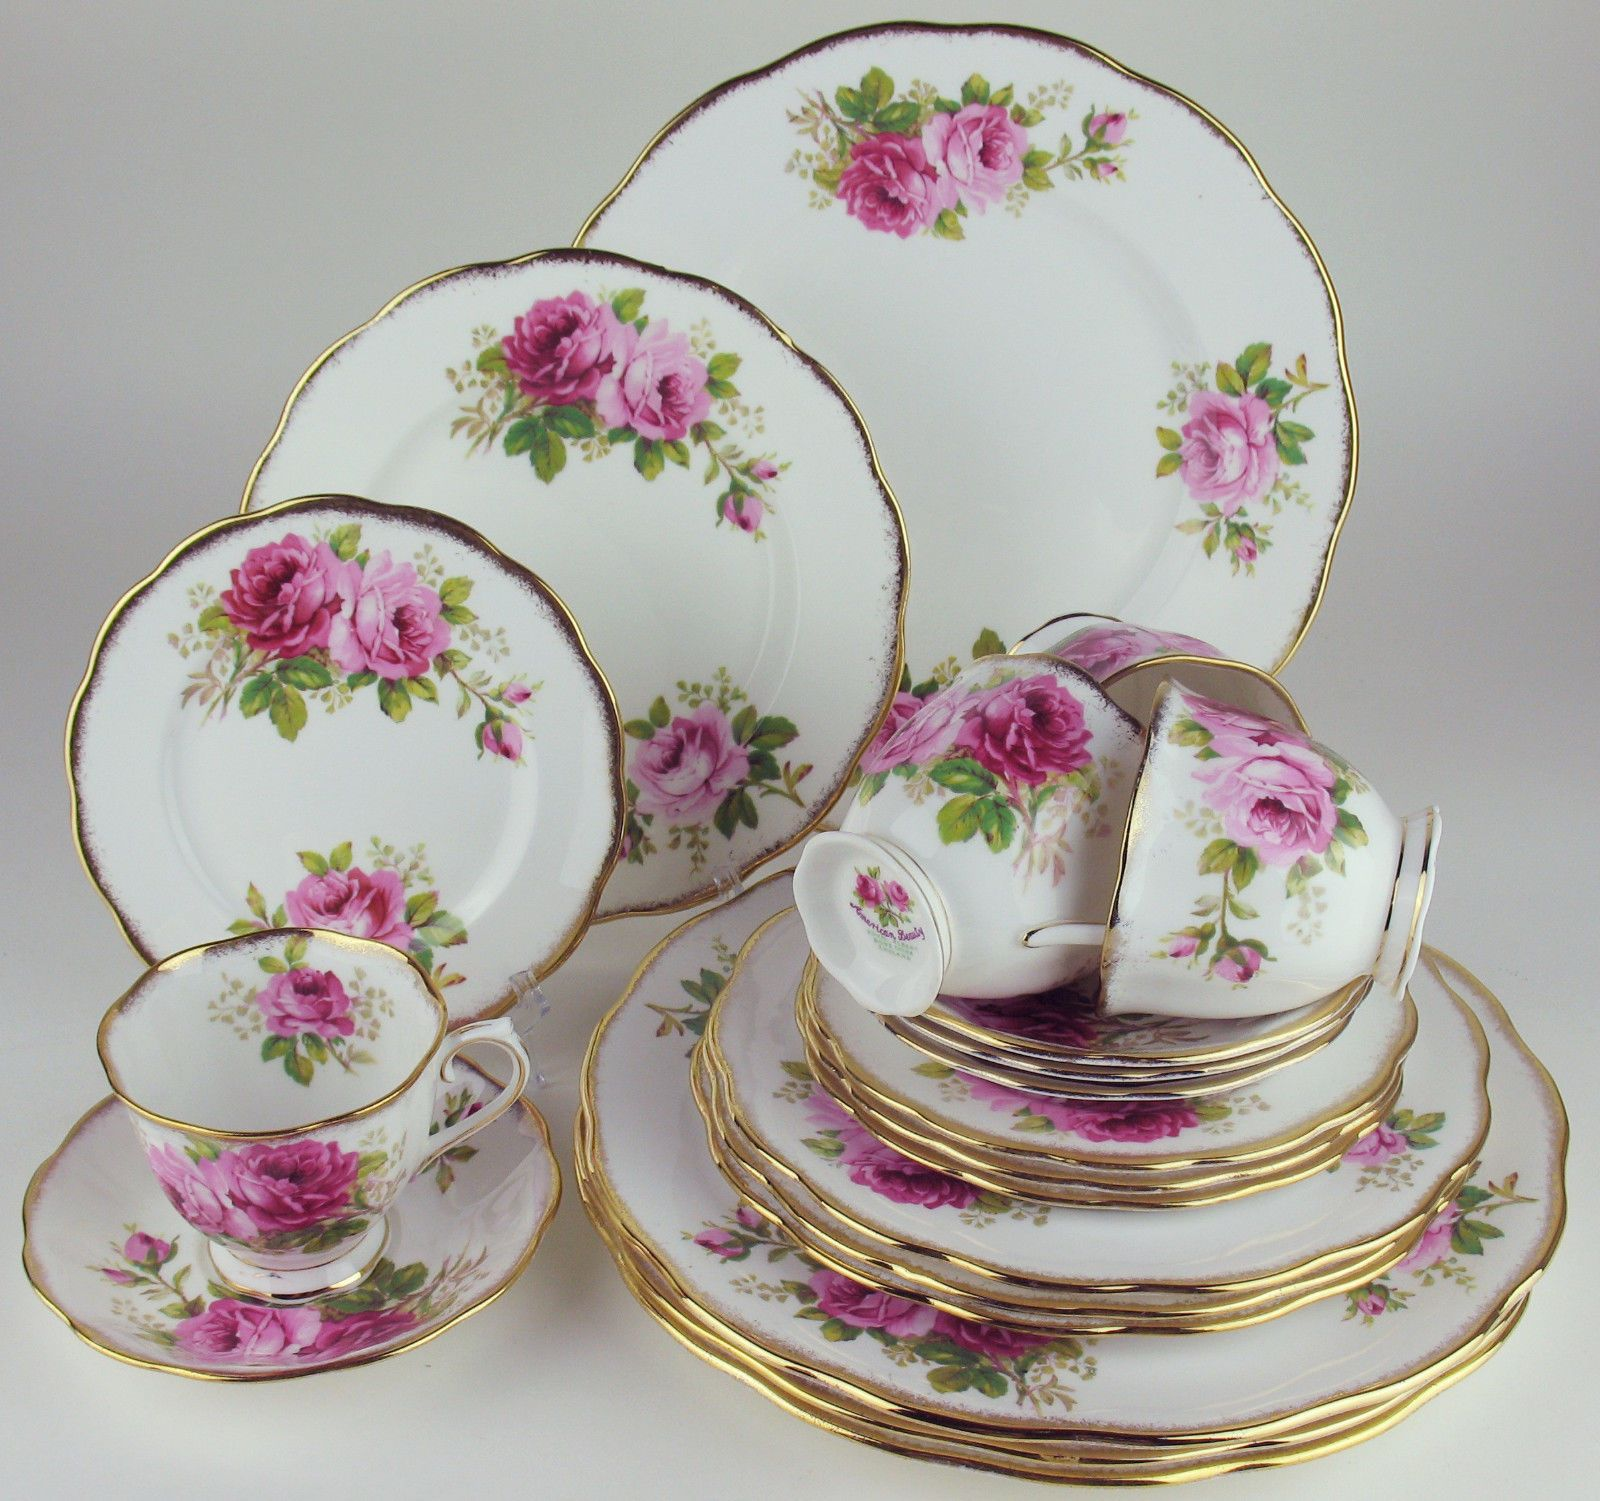 Royal Albert China u0026 Dinnerware | eBay & 20 Piece Set Royal Albert American Beauty 4 x 5 Piece Place Settings ...